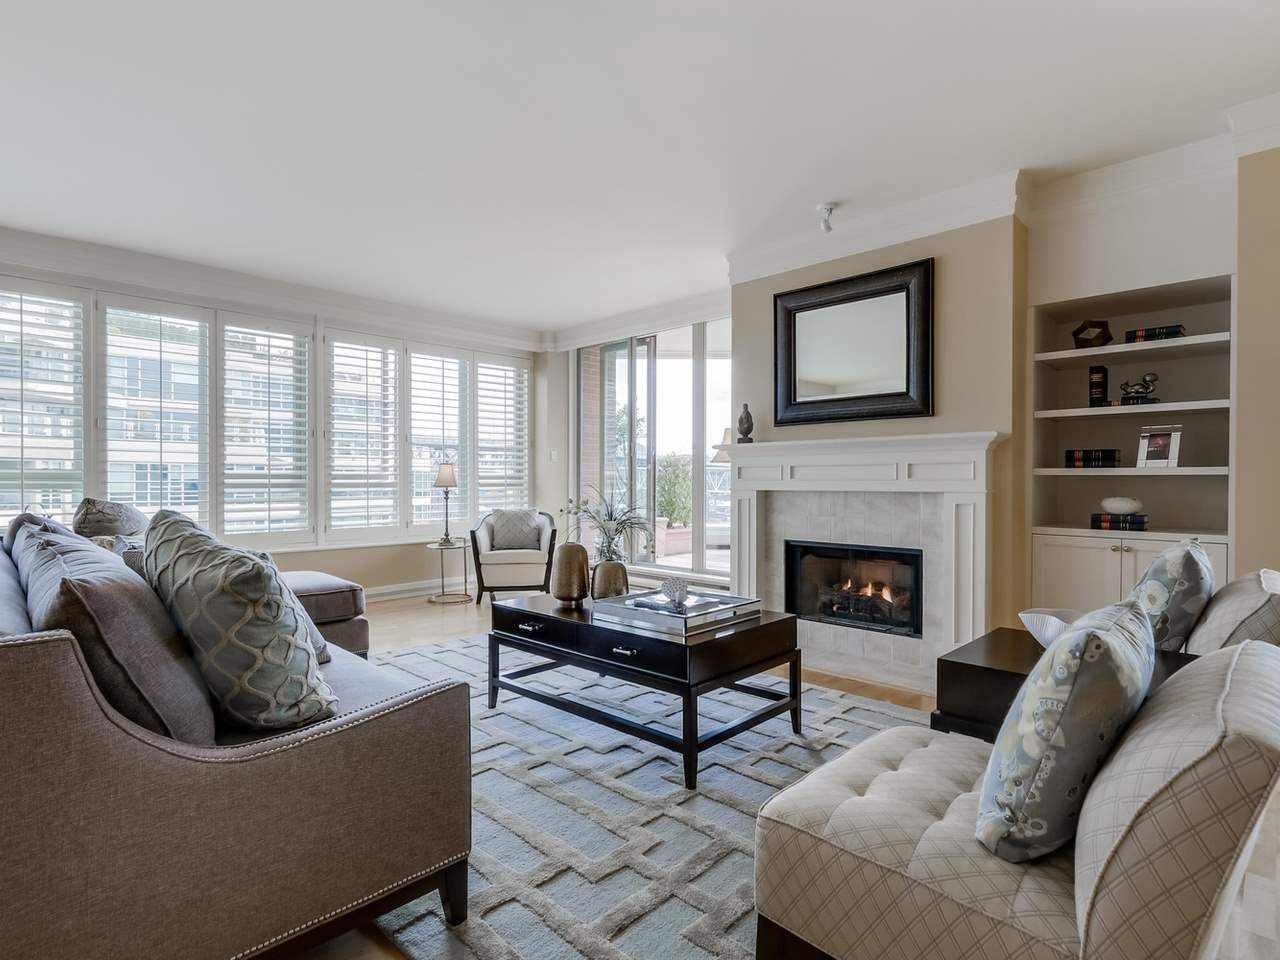 """Photo 3: Photos: 800 1675 HORNBY Street in Vancouver: Yaletown Condo for sale in """"SEAWALK SOUTH"""" (Vancouver West)  : MLS®# R2083569"""